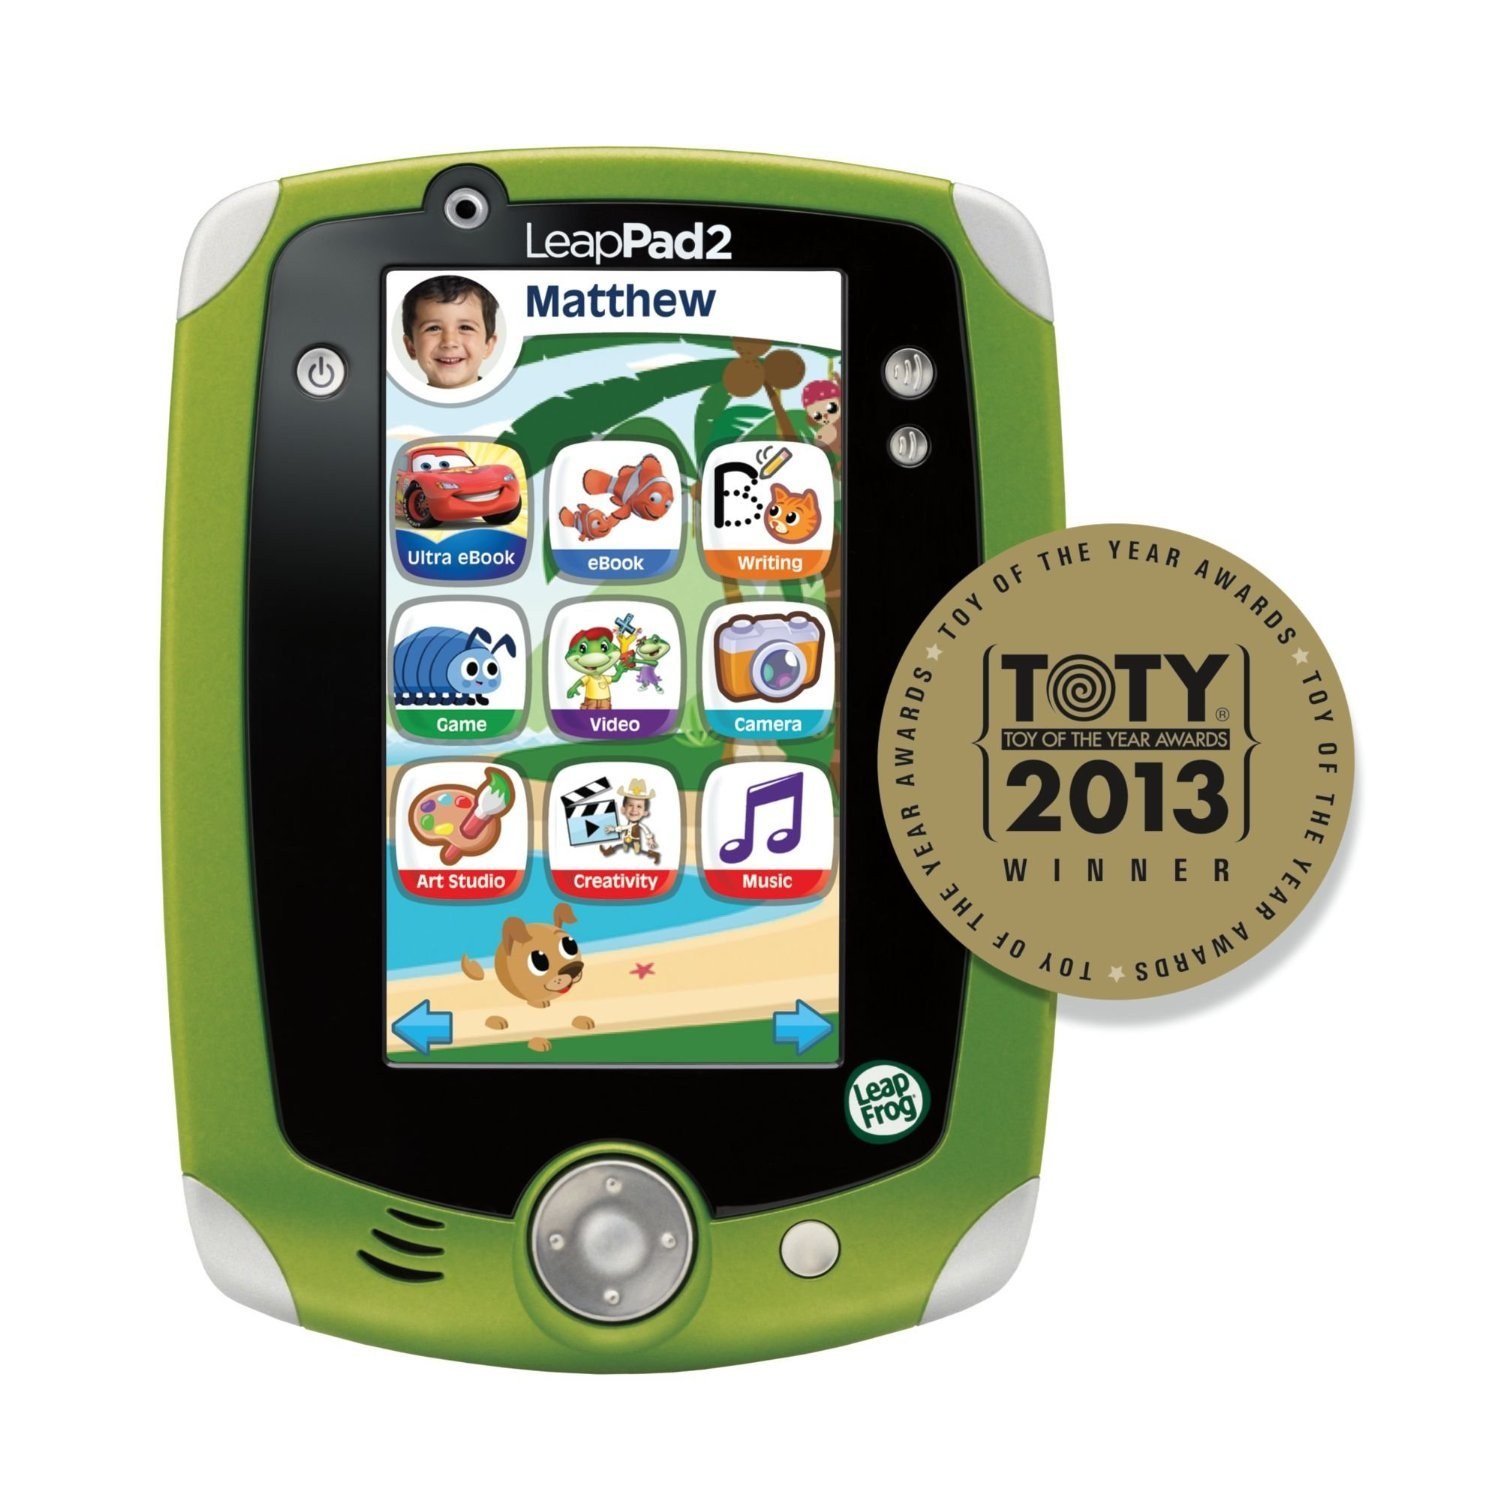 Dec 20,  · The follow-up to the LeapPad 2, the third generation tablet from LeapFrog designed for children aged runs on its own operating system and now Author: Michael Sawh.